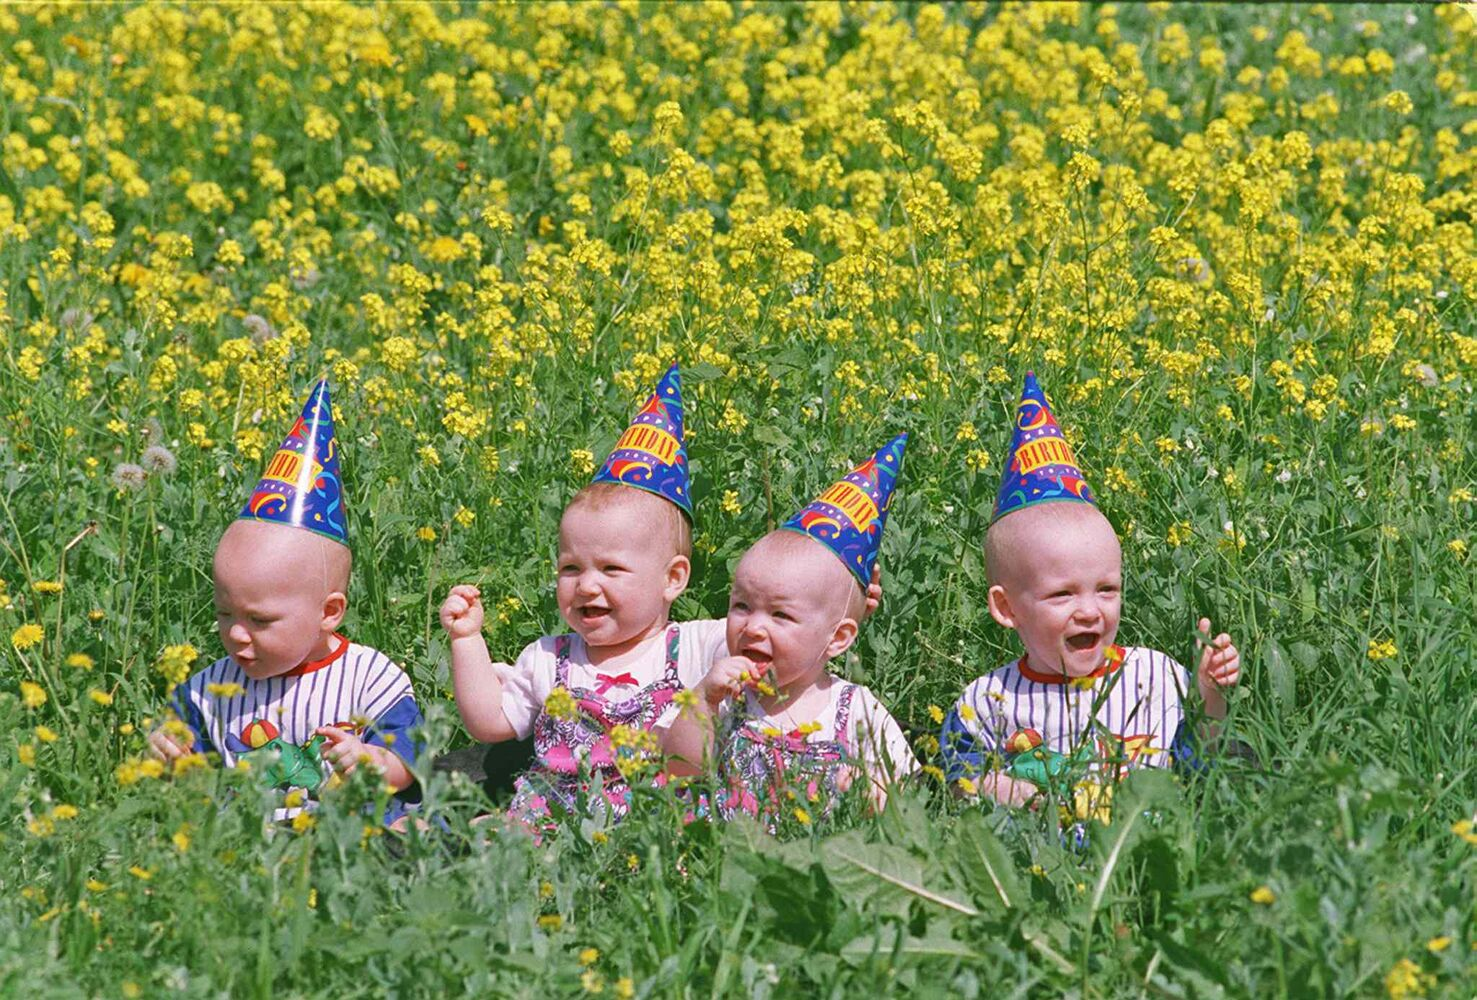 The quadruplets celebrate their first birthday. (JEFF DE BOOY / WINNIPEG FREE PRESS FILES)